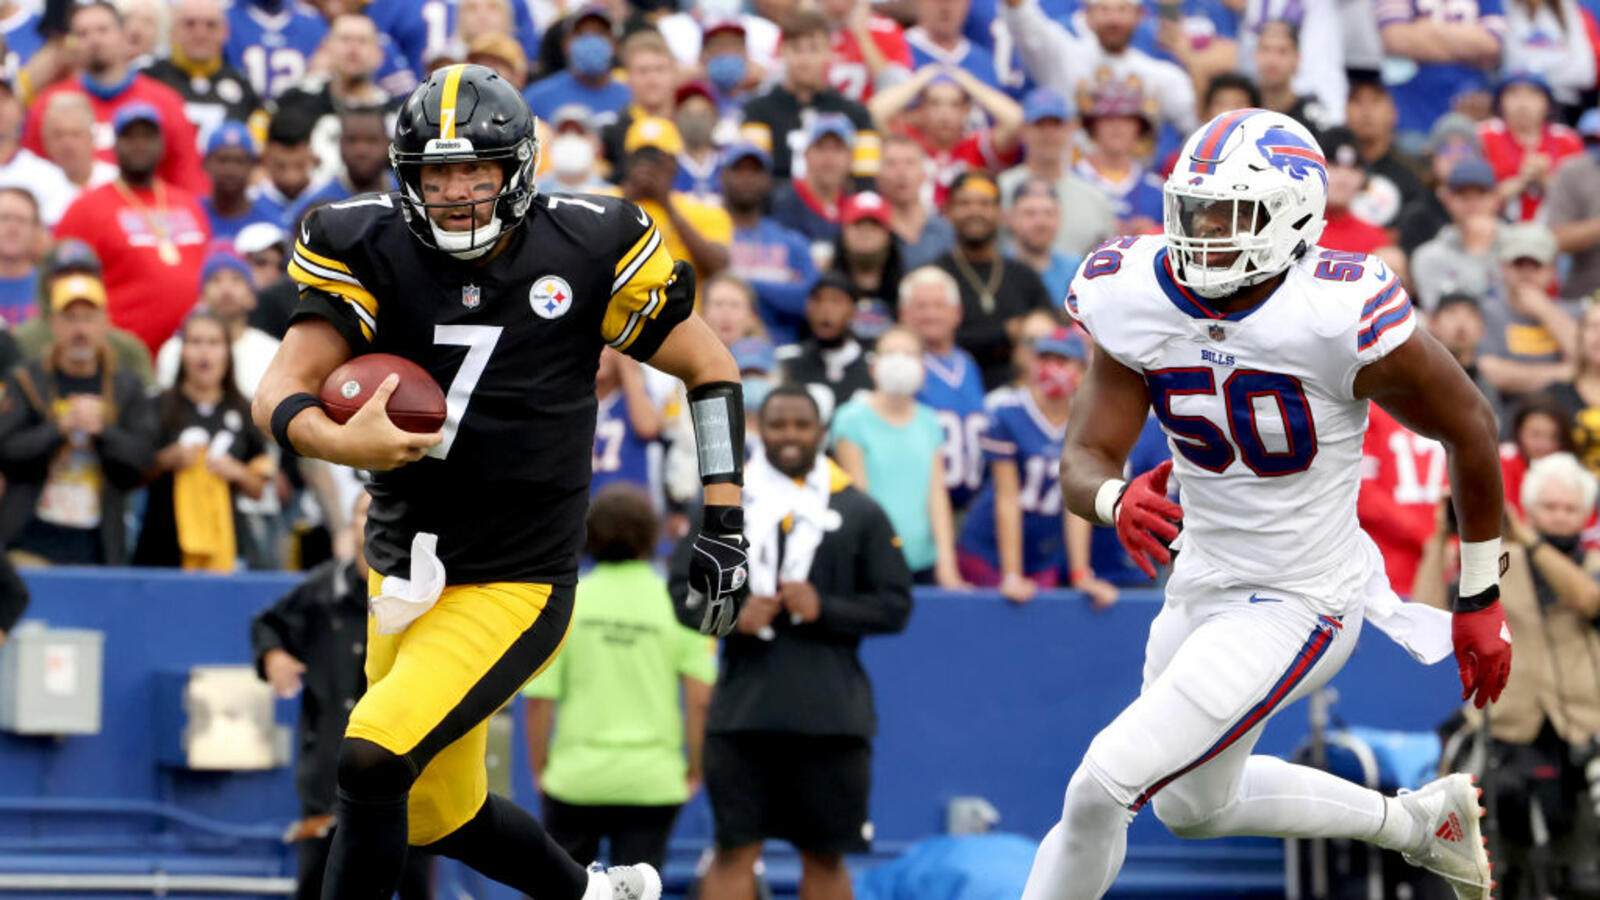 The Defo Files: What a WILD Opening NFL Weekend!